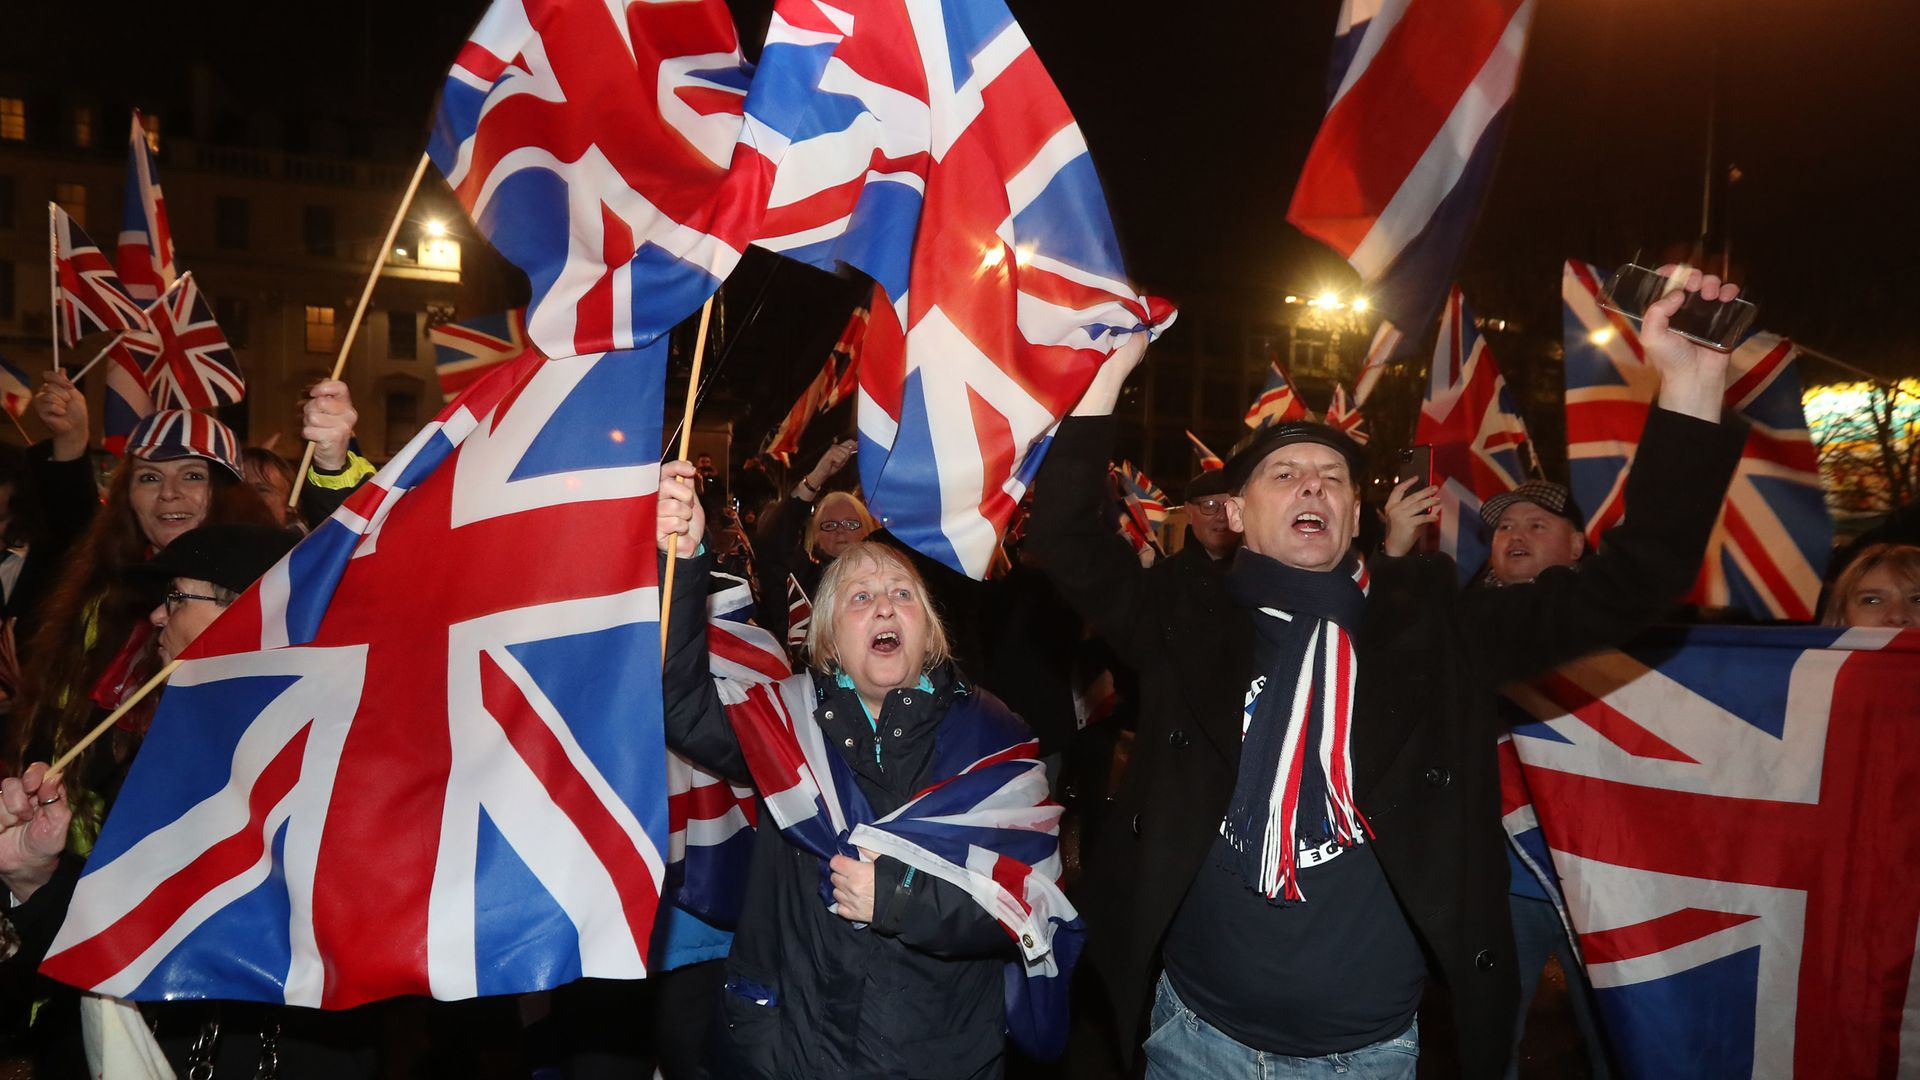 Pro-Brexit supporters gather in George Square, Glasgow, as the UK prepared to leave the European Union on January 31 last year - Credit: PA